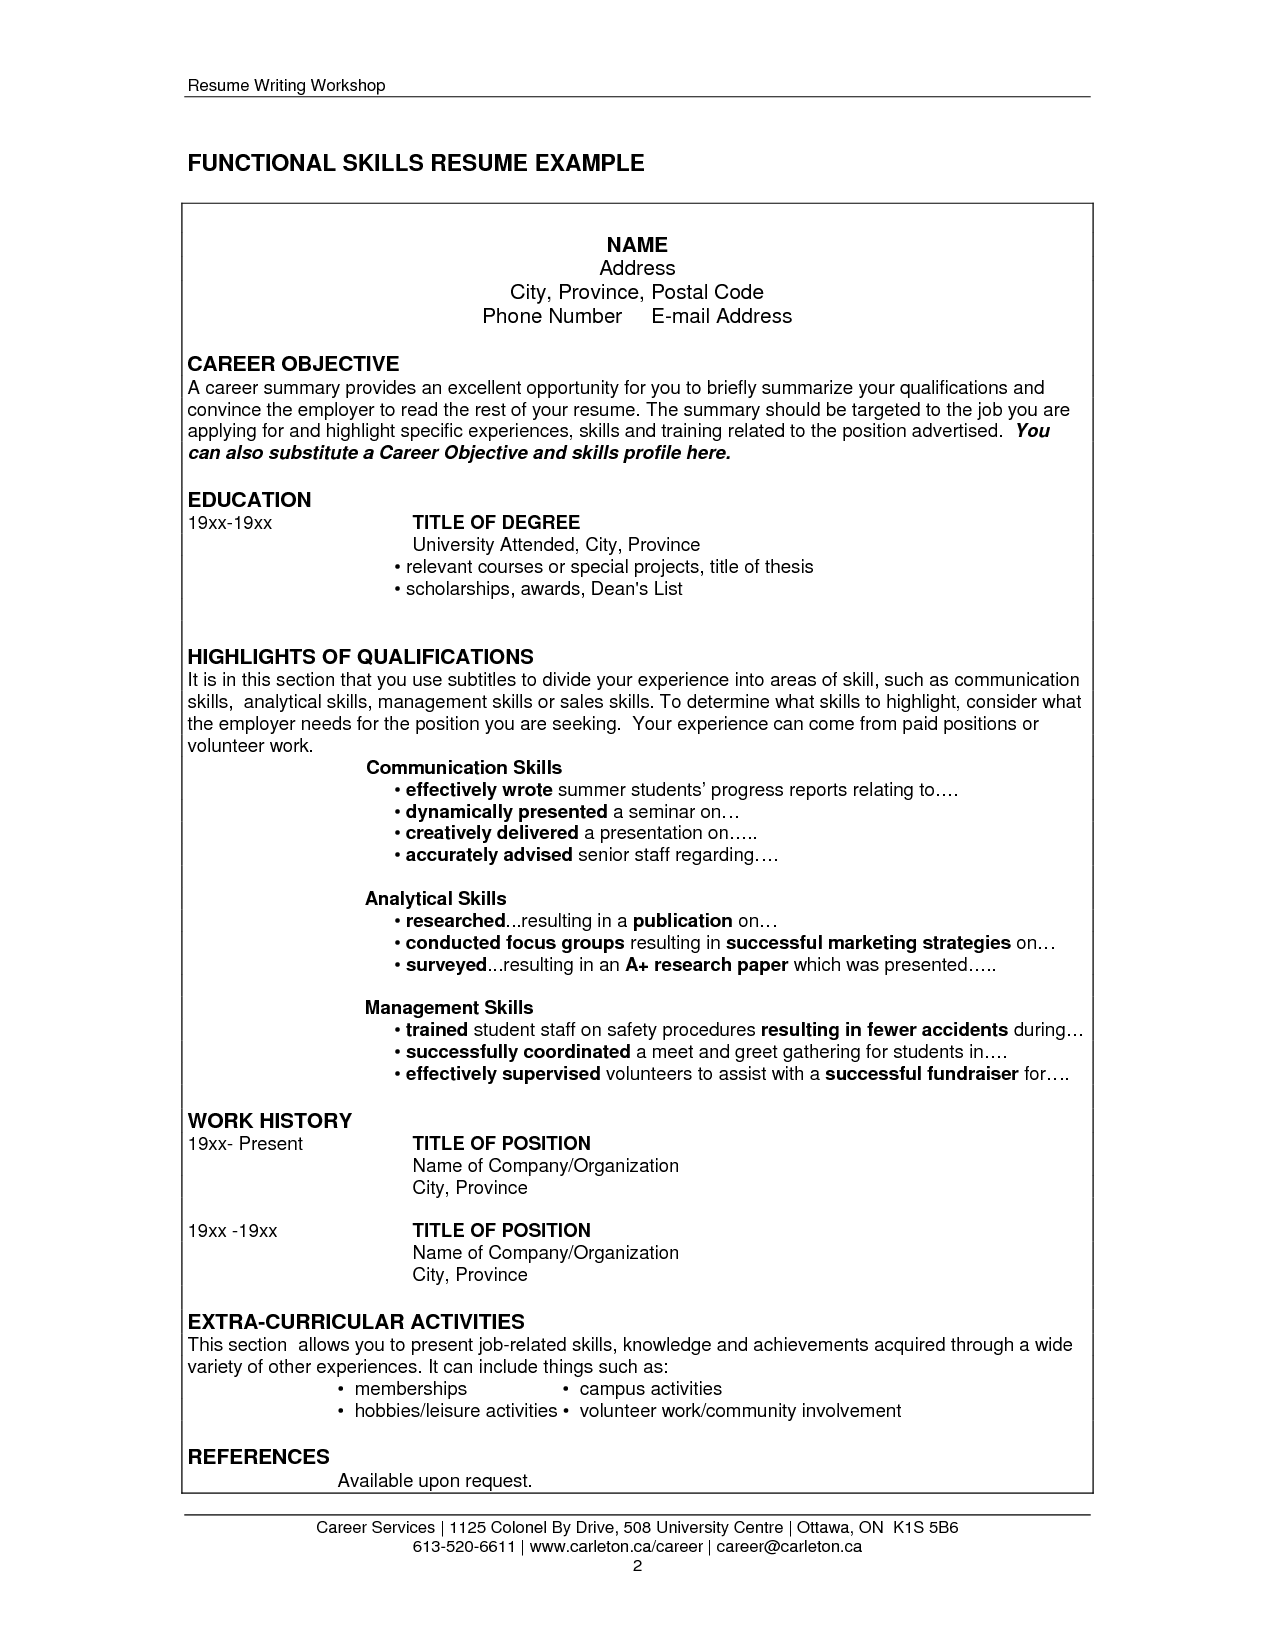 Resume Format Template Stunning Image Result For Skills Resume Format  Business  Pinterest